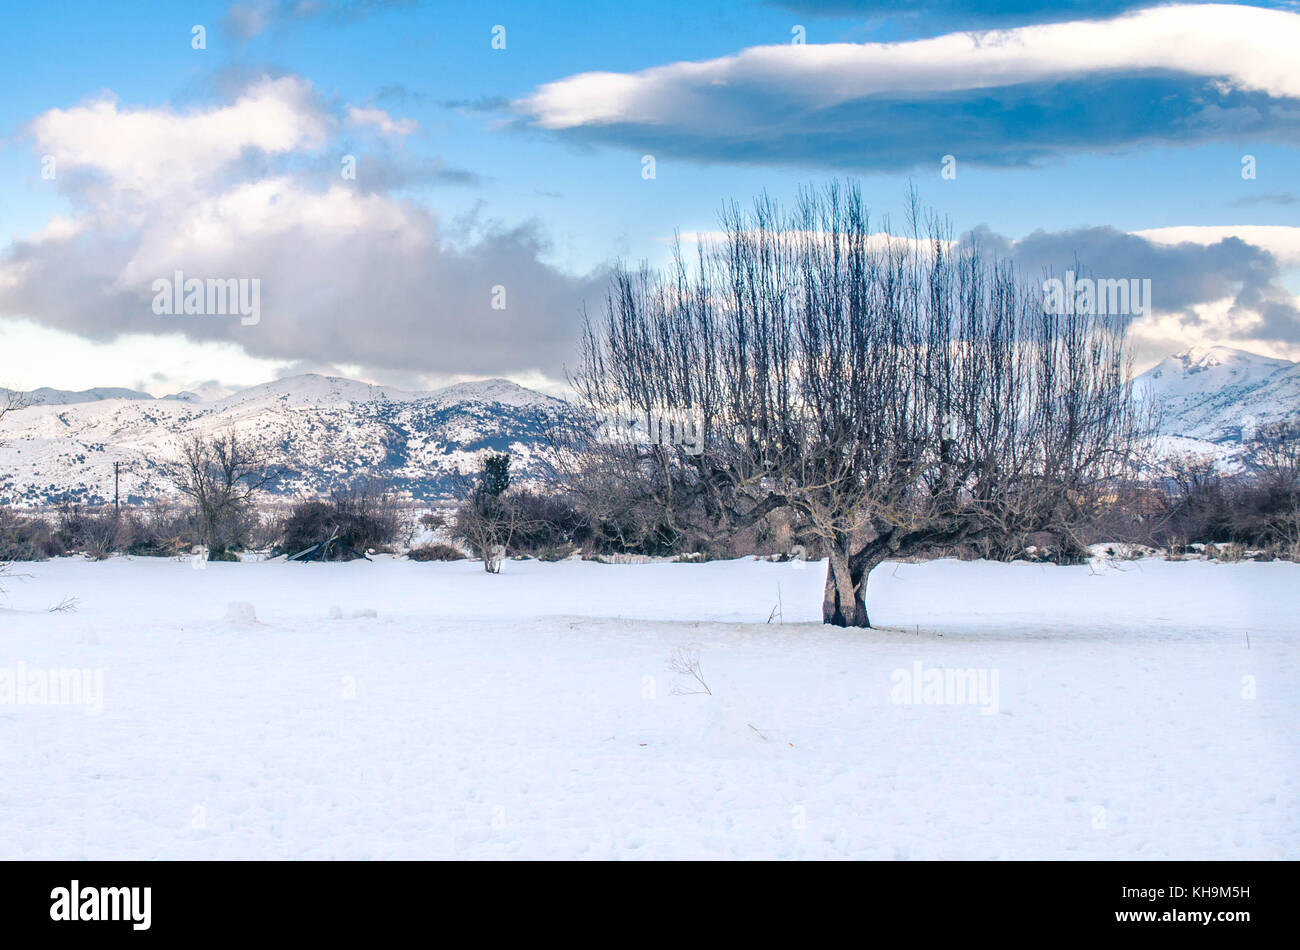 The picturesque Lasithi Plateau covered with snow. A lonely tree composed this amazing scene. Stock Photo